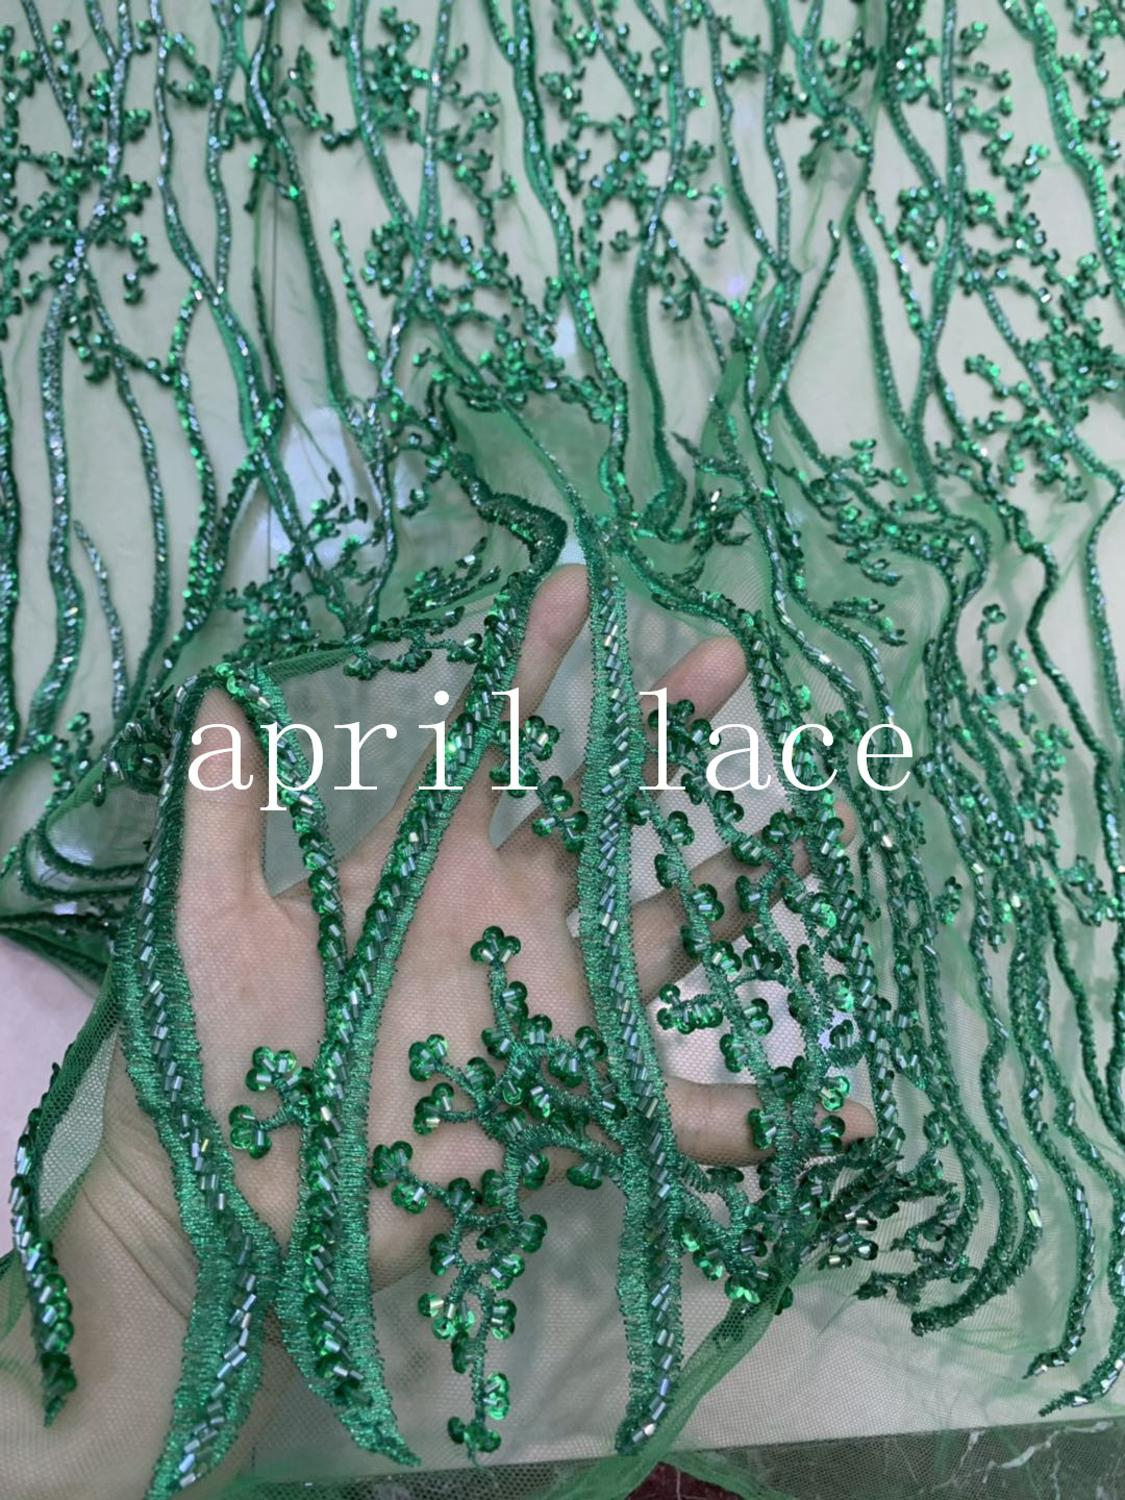 ww001 # 2019 new stock green 5yards/lot hand made beads sequin embroidery tulle mesh lace fabric for wedding bridal dress /party